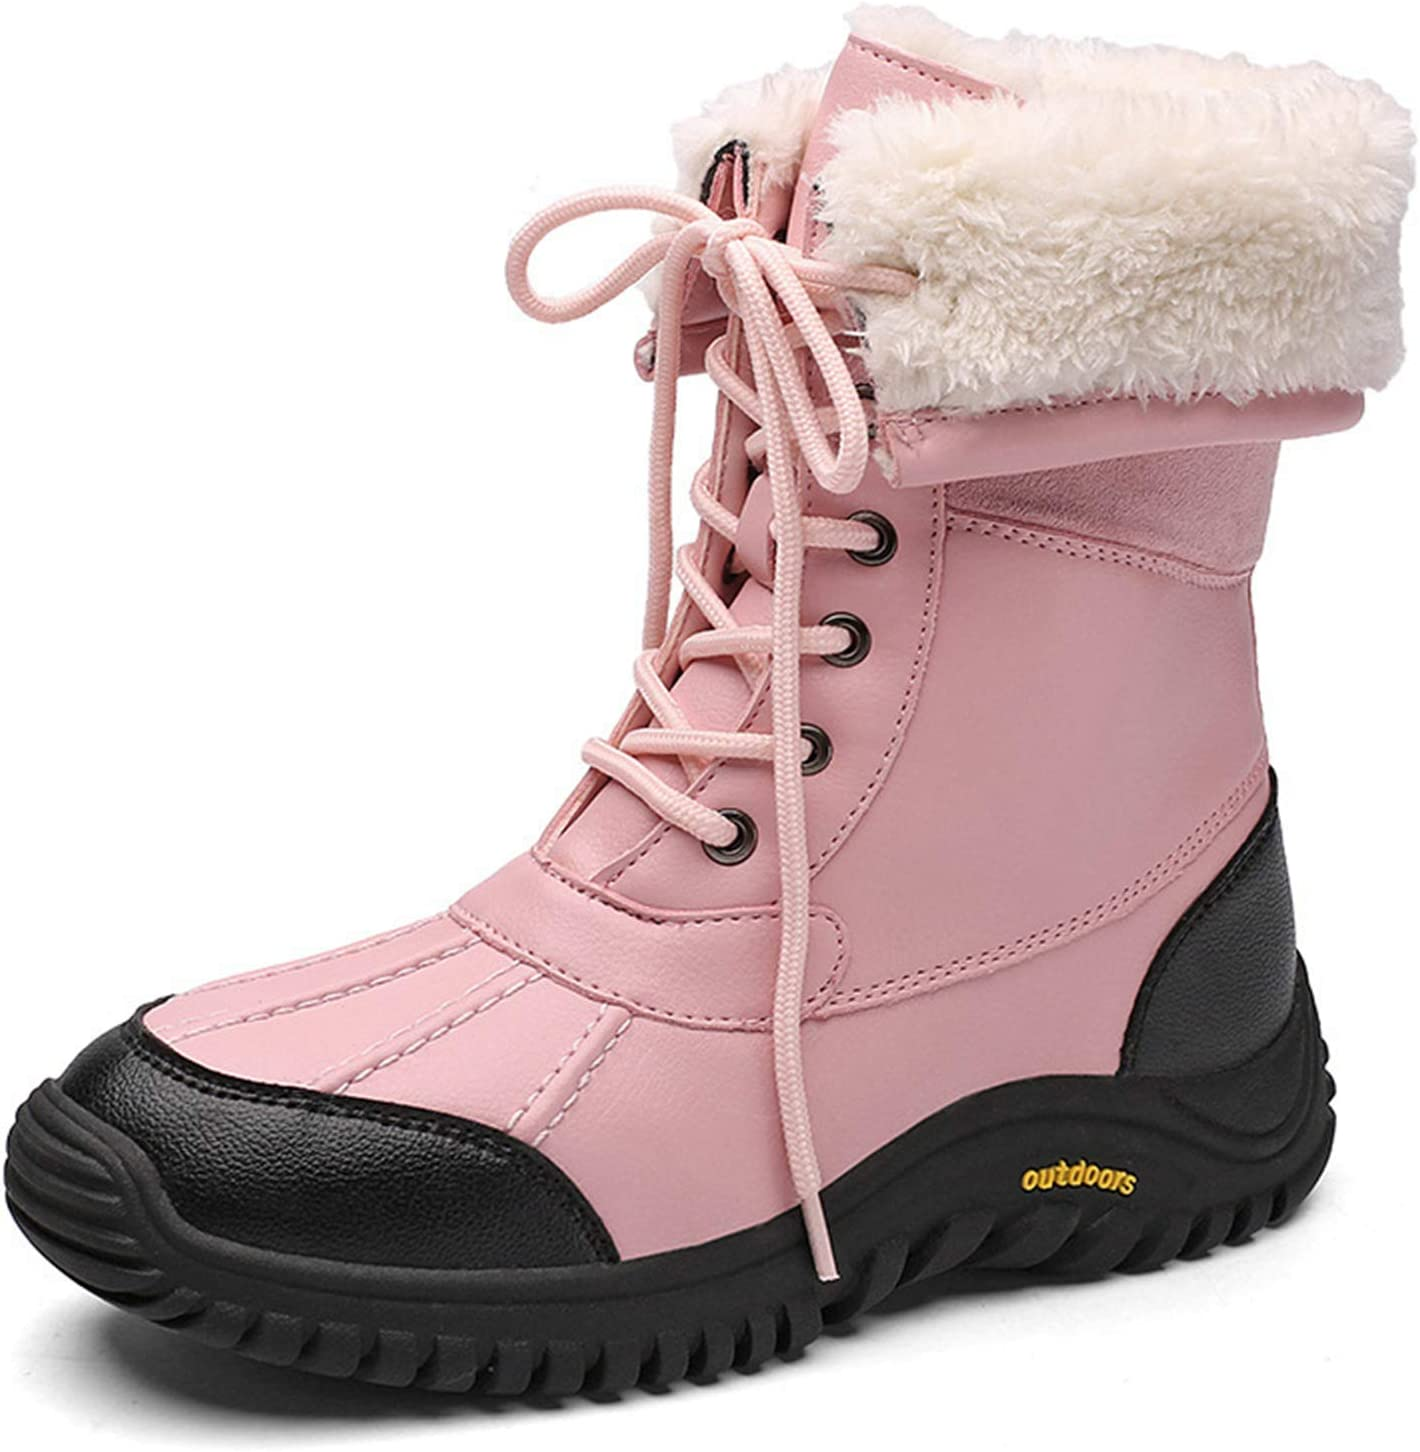 Women's Snow Boots Winter Sneakers Non-Slip Waterproof Walking Hiking Trekking Shoes Warm Fur Lined Outdoor Casual Lace Up Sneakers,Pink,37